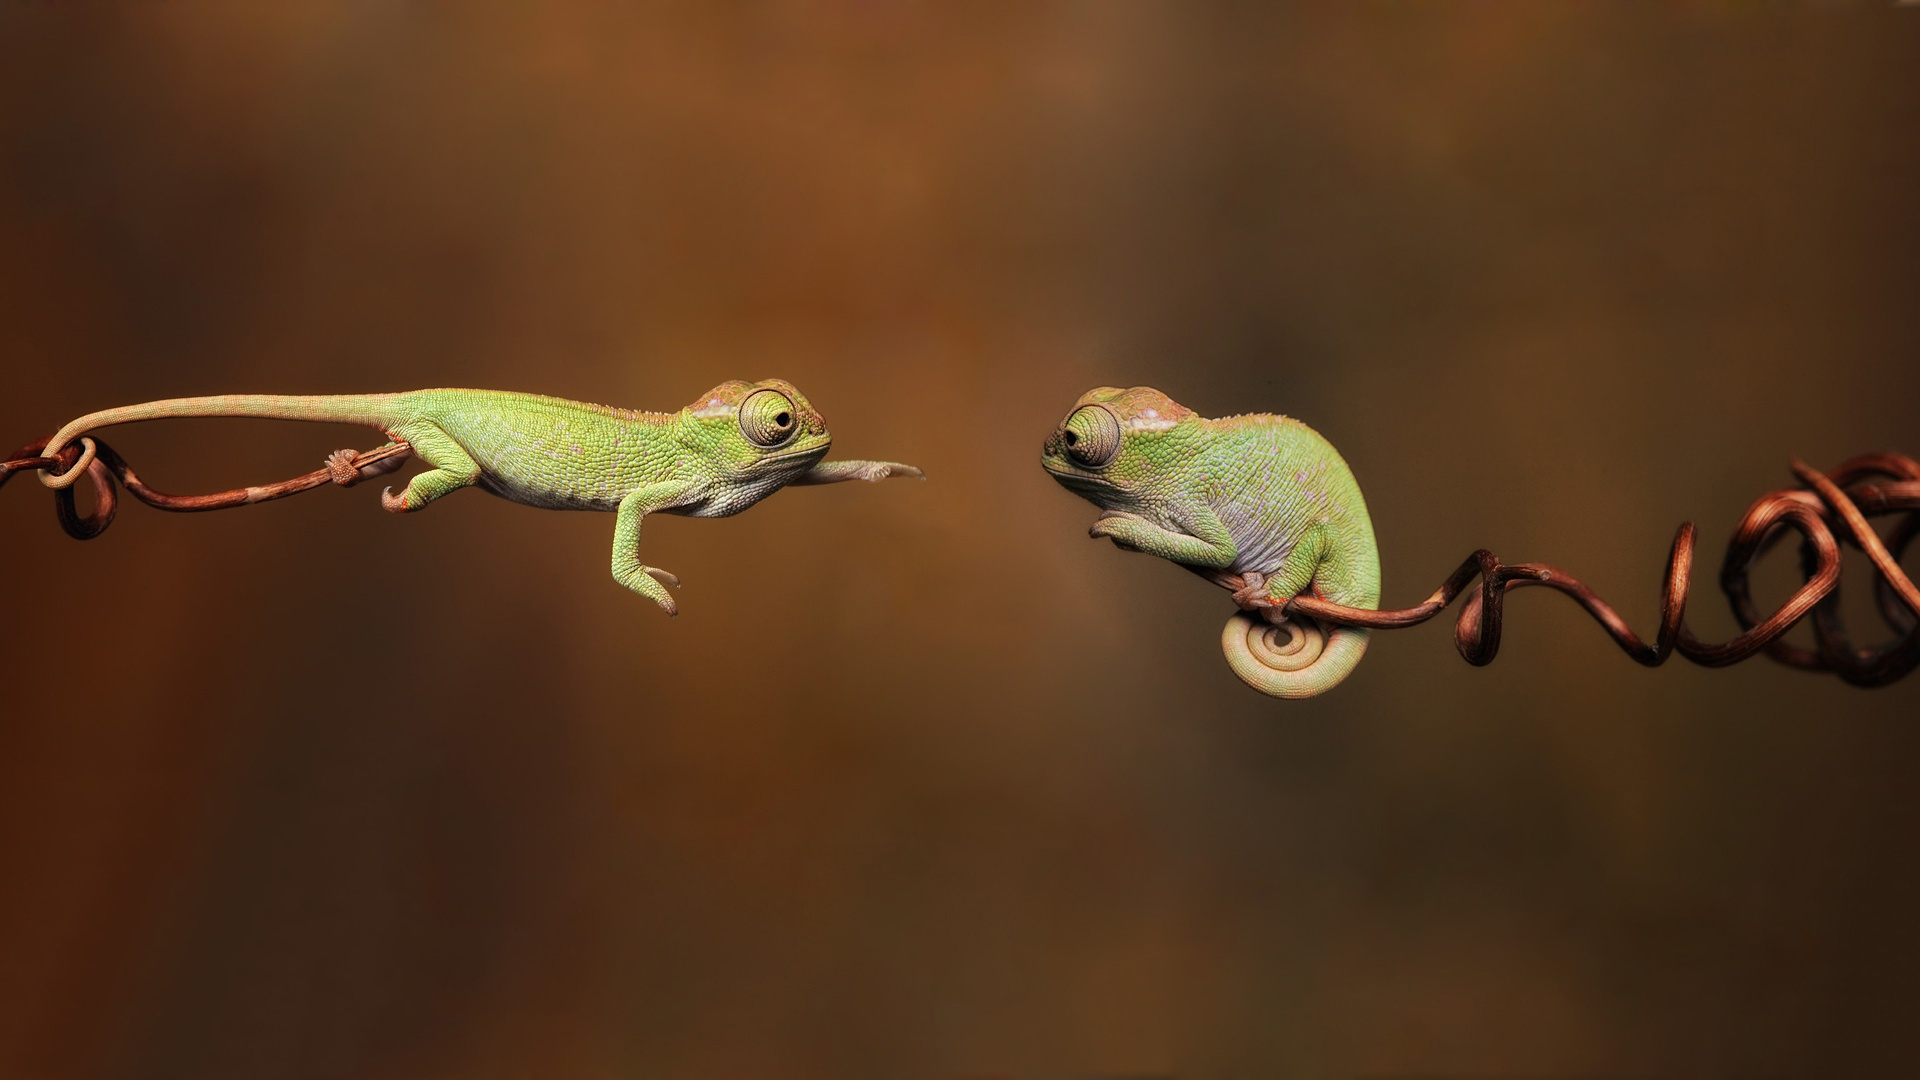 cute chameleon wallpaper 23640